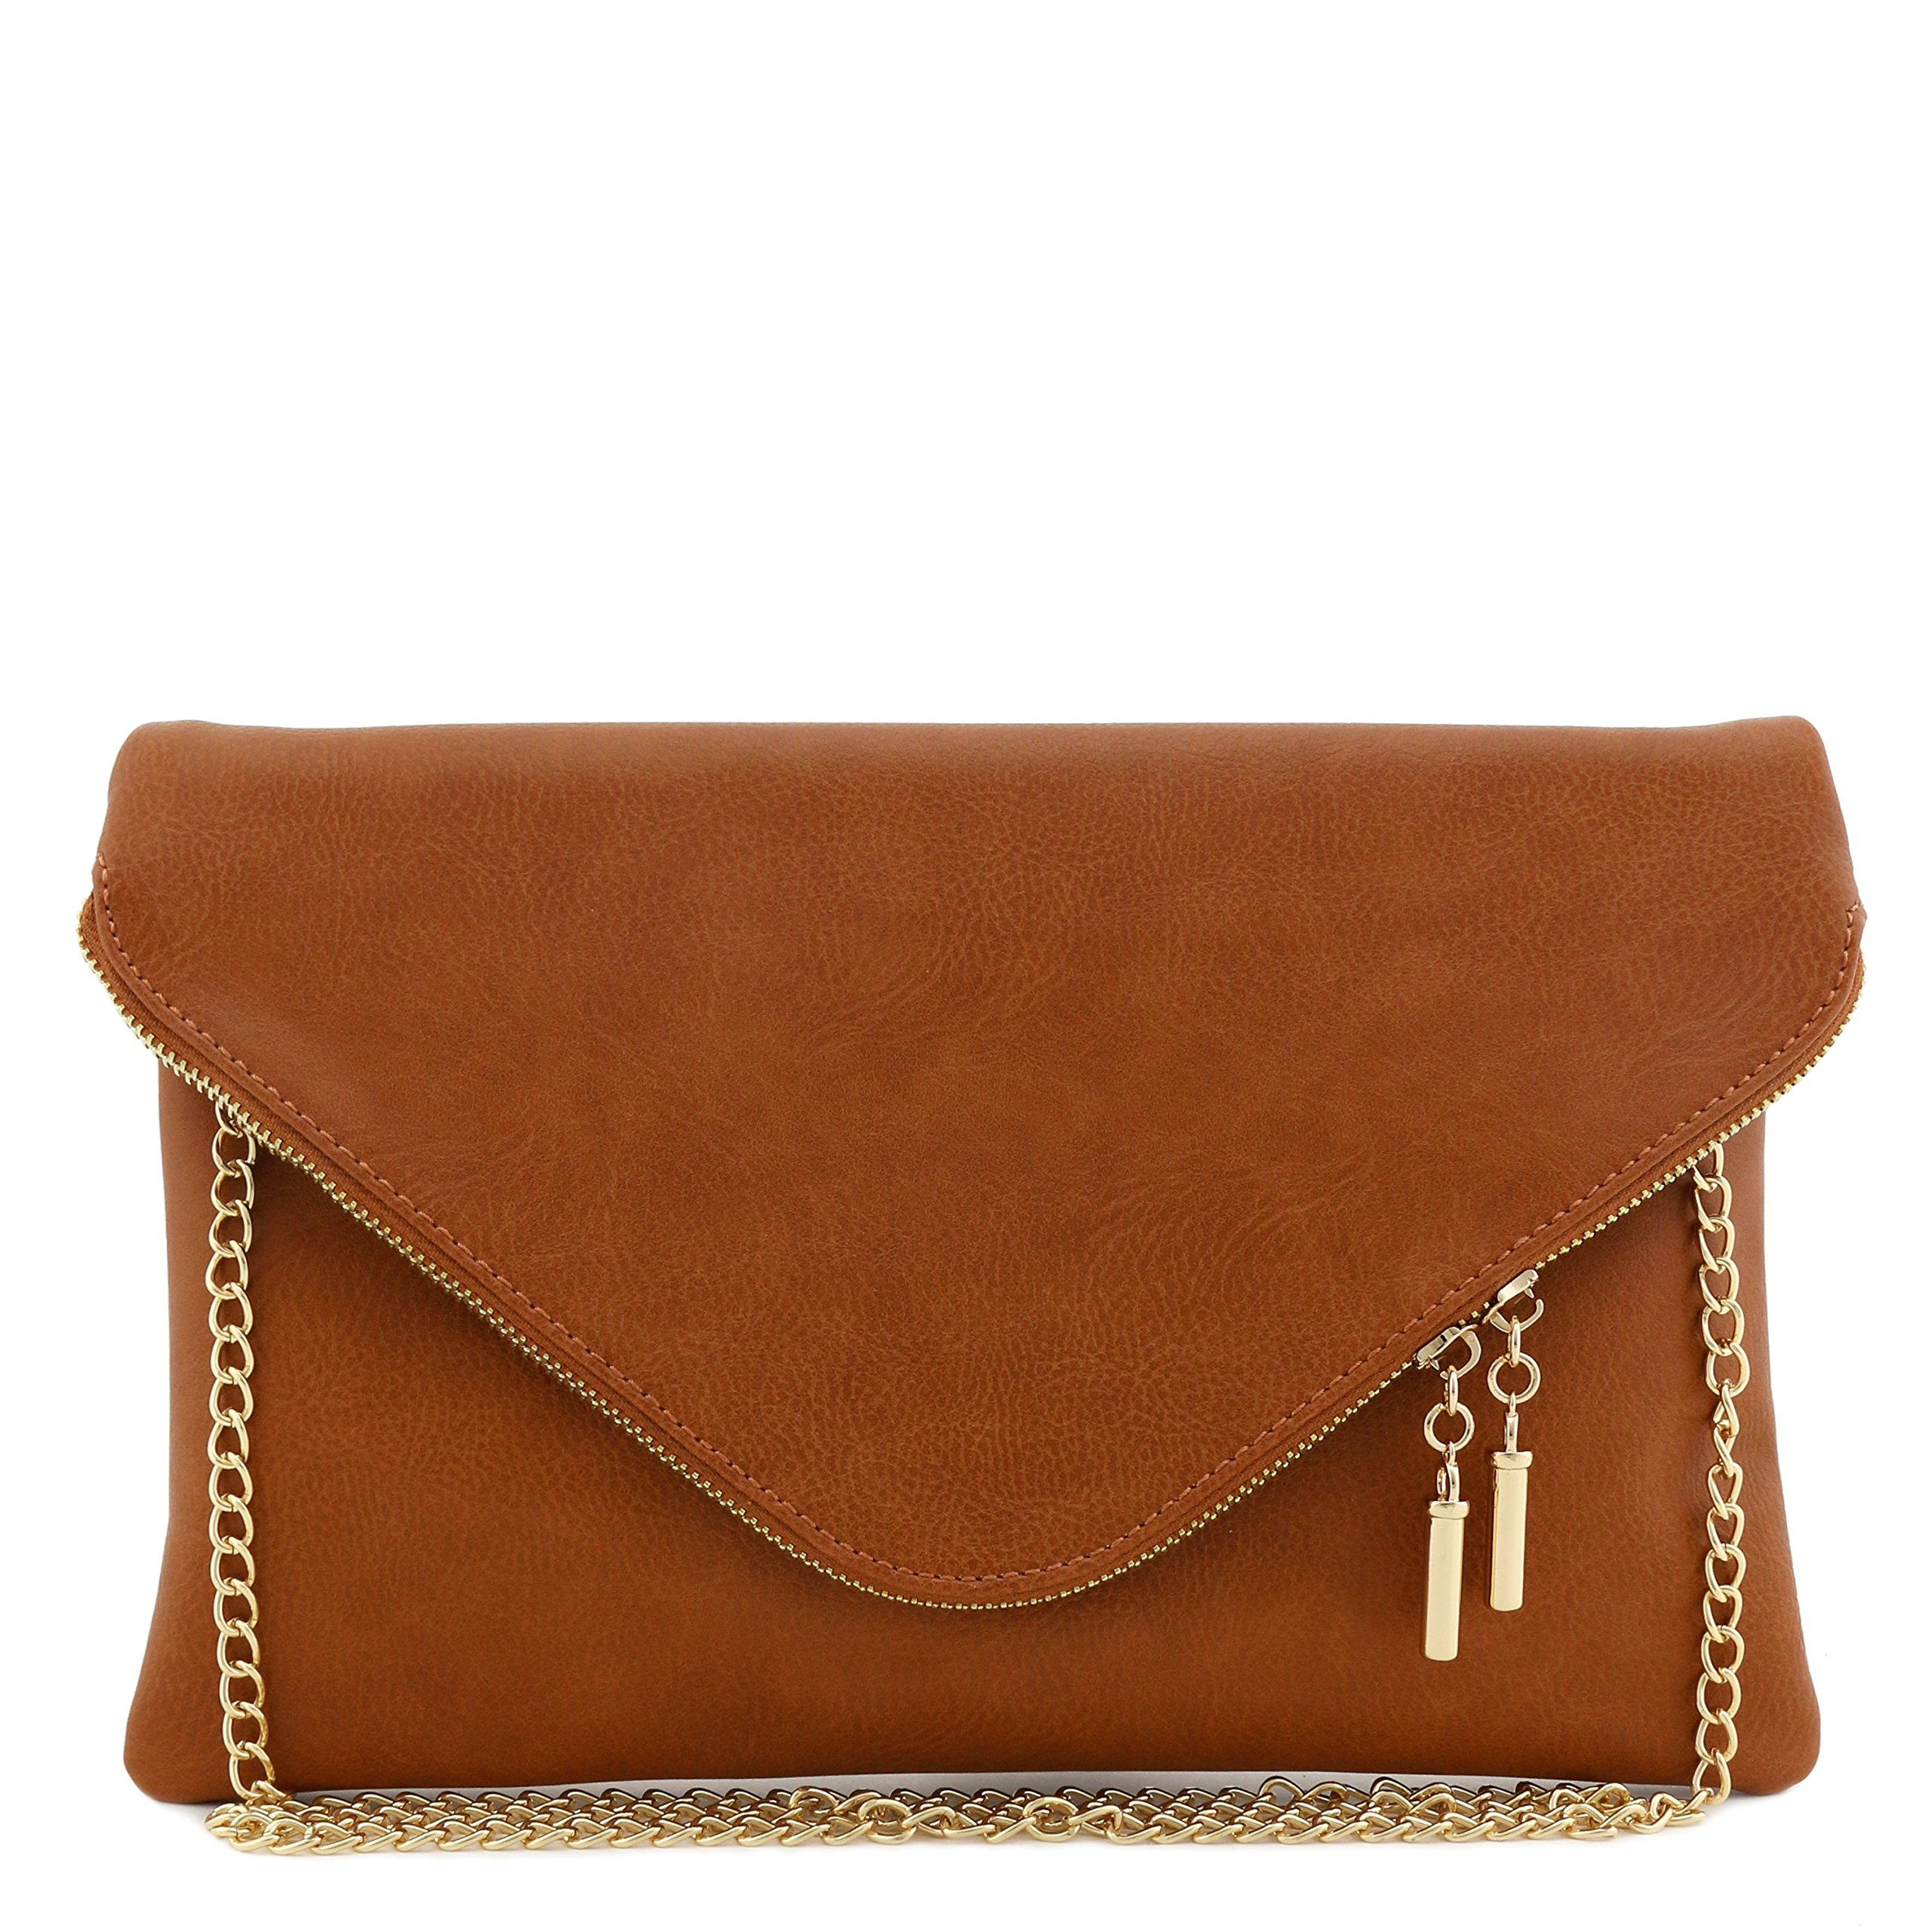 Large Envelope Clutch Bag with Chain Strap (Dark Tan)